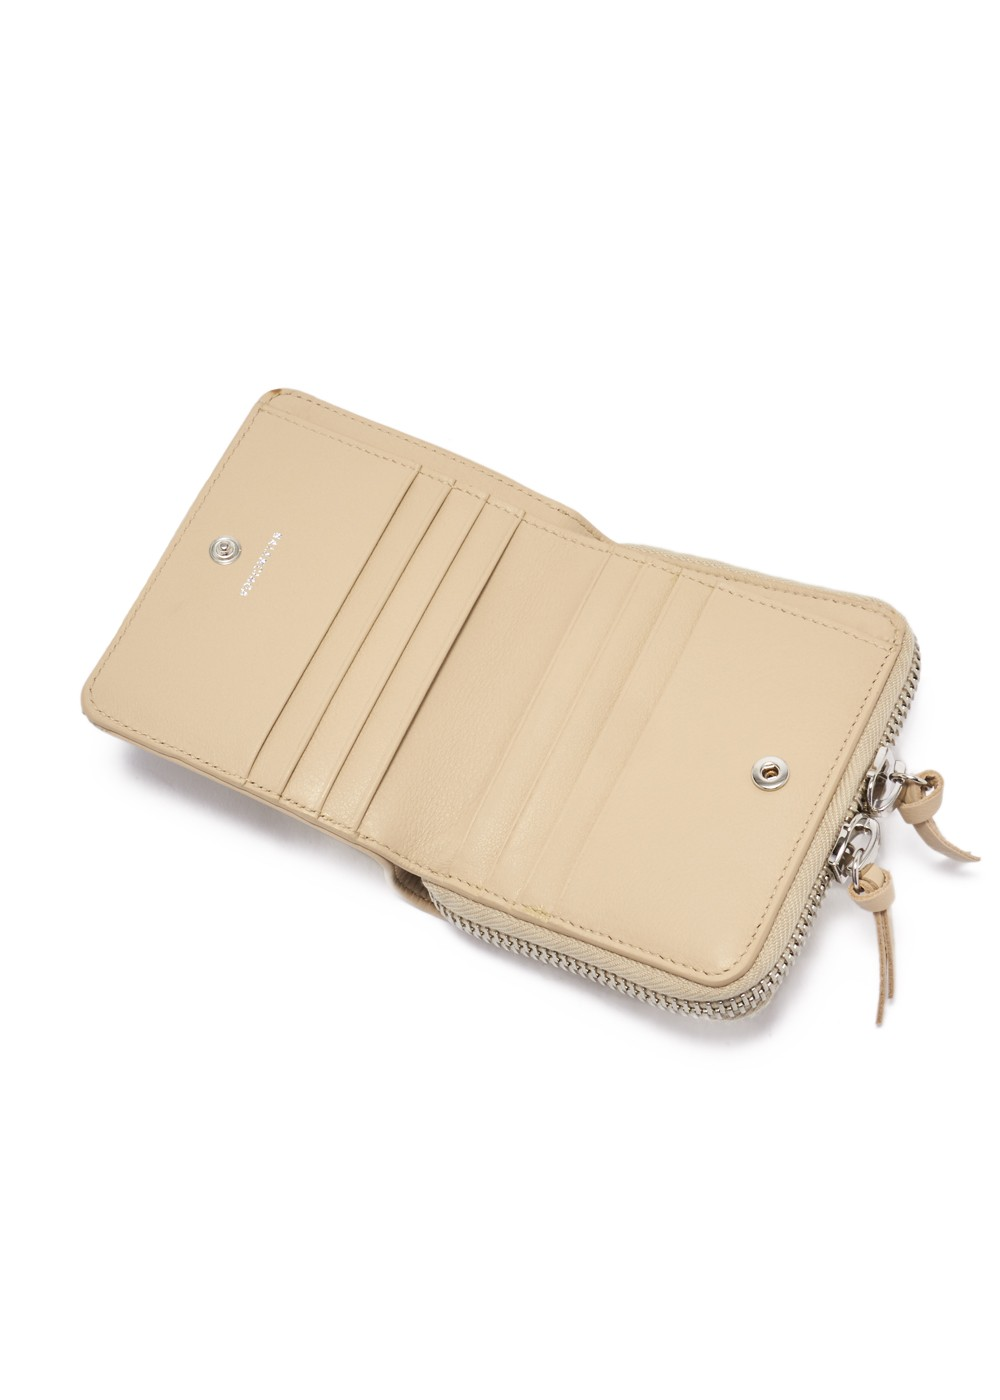 【最大17%OFF】【6/11入荷】PAPER AROUND M WALLET|BEIGE TAPIOCA|レディース財布|BALENCIAGA